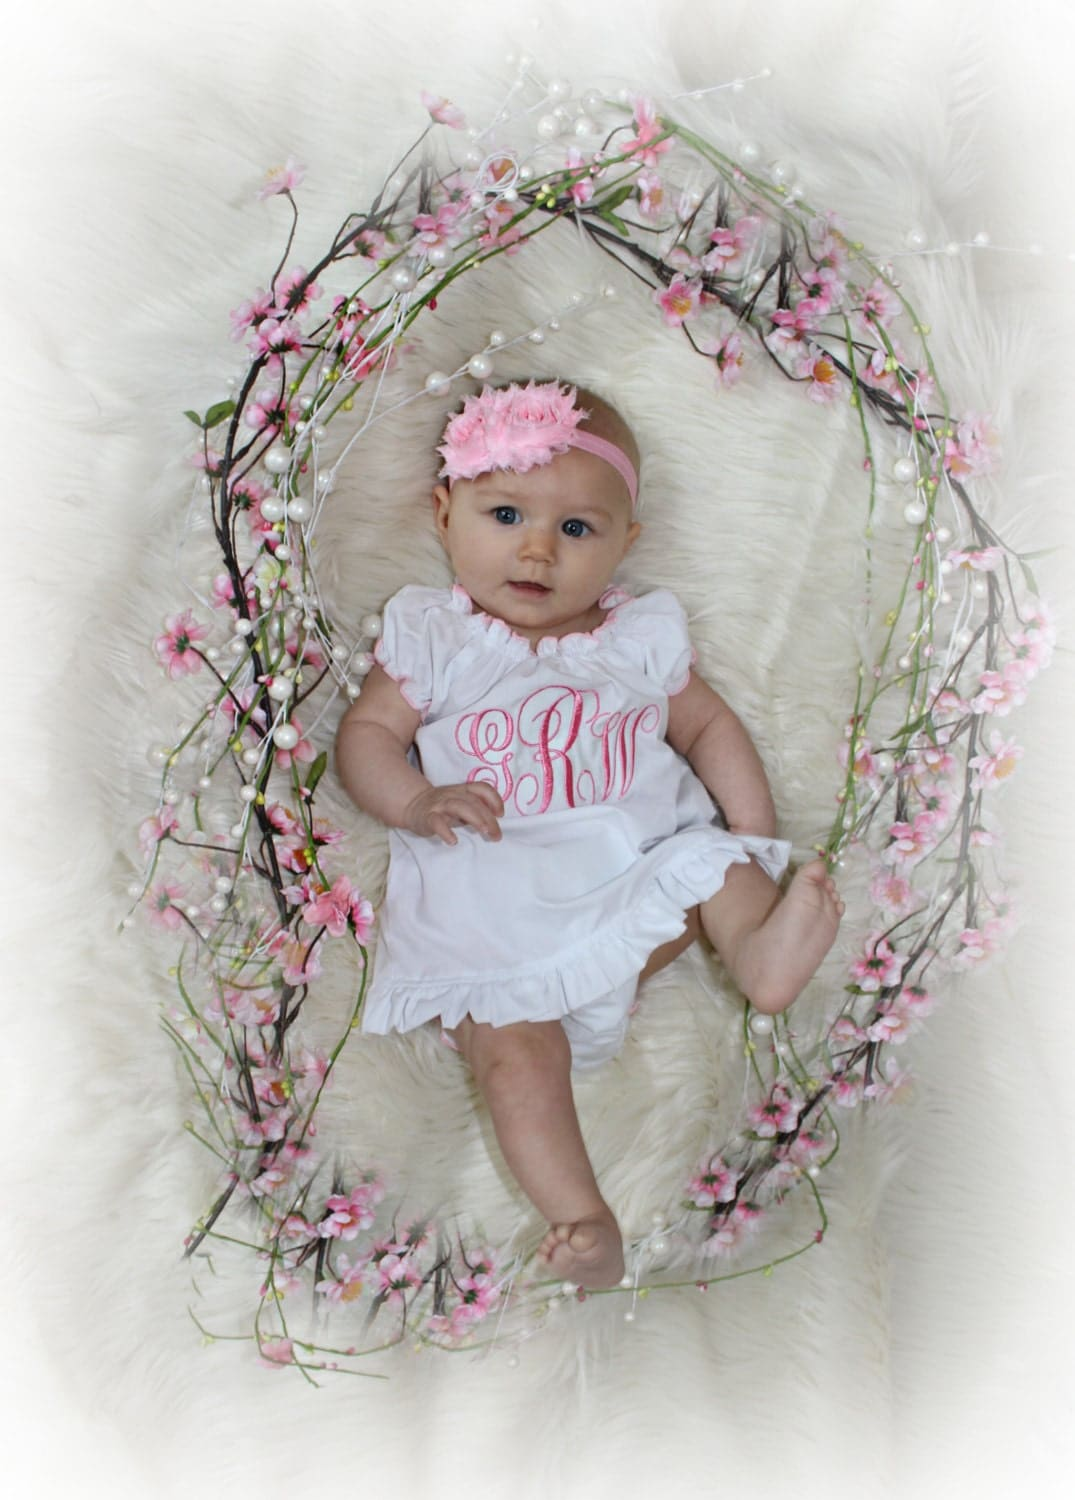 Find great deals on eBay for newborn baby girl outfit. Shop with confidence.